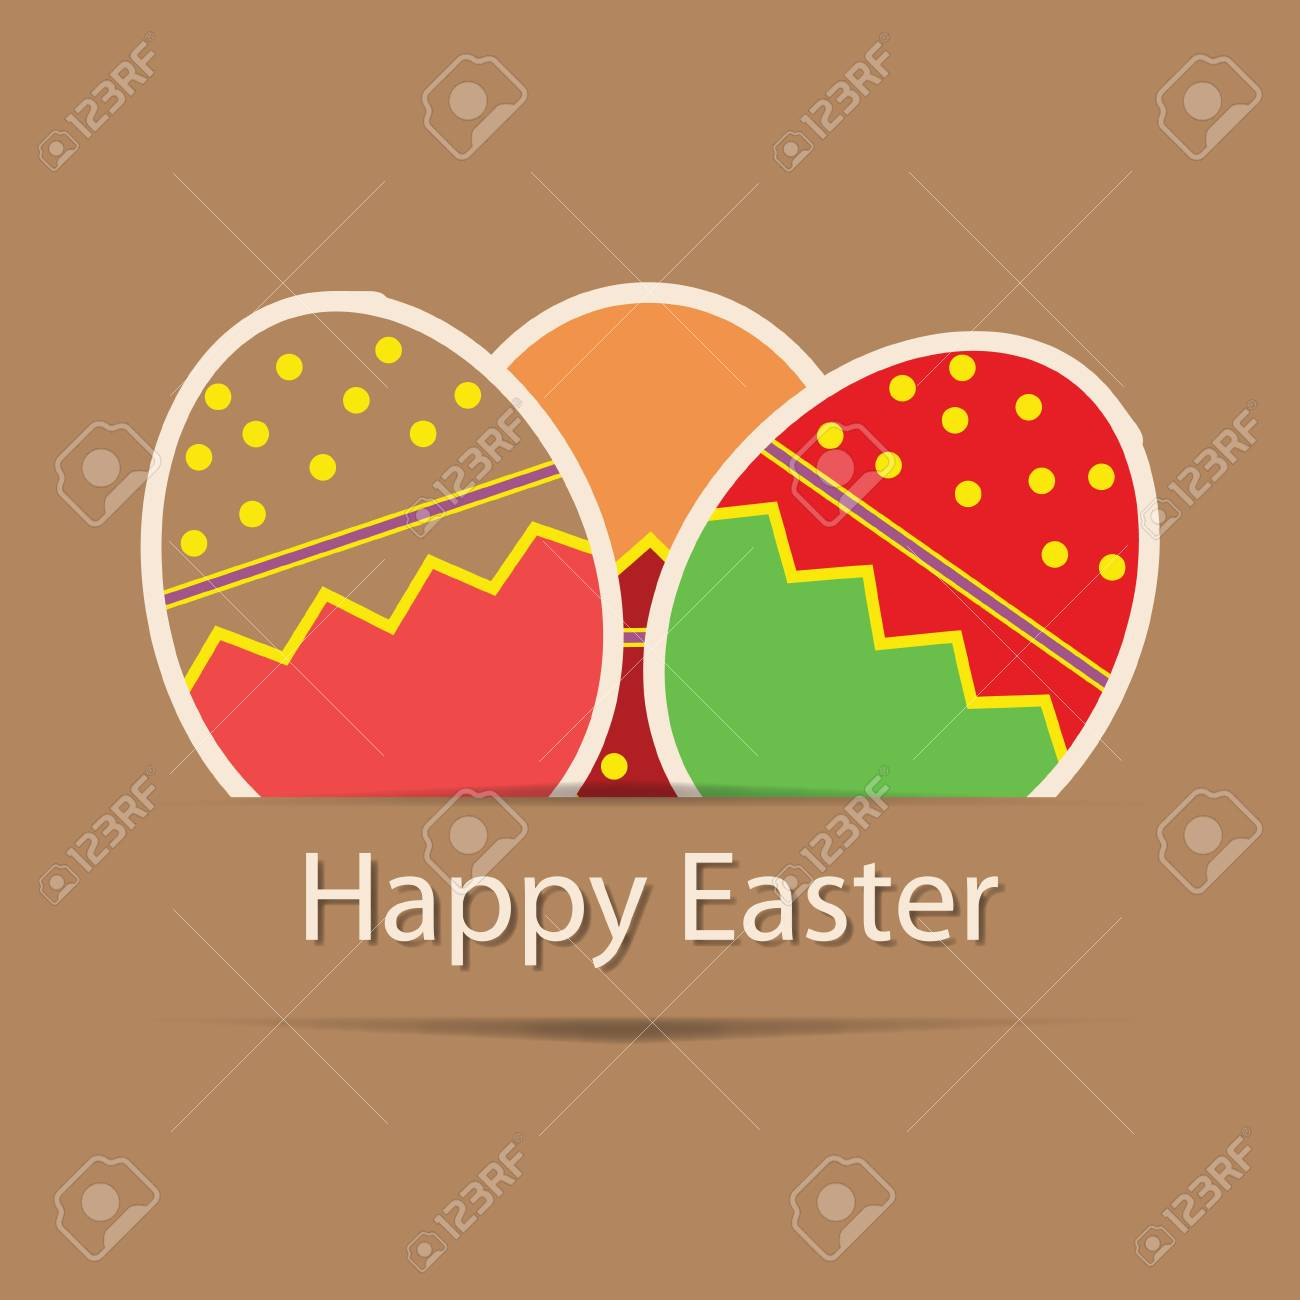 Easter eggs card with colourful eggs  vector illustration Stock Vector - 12709926